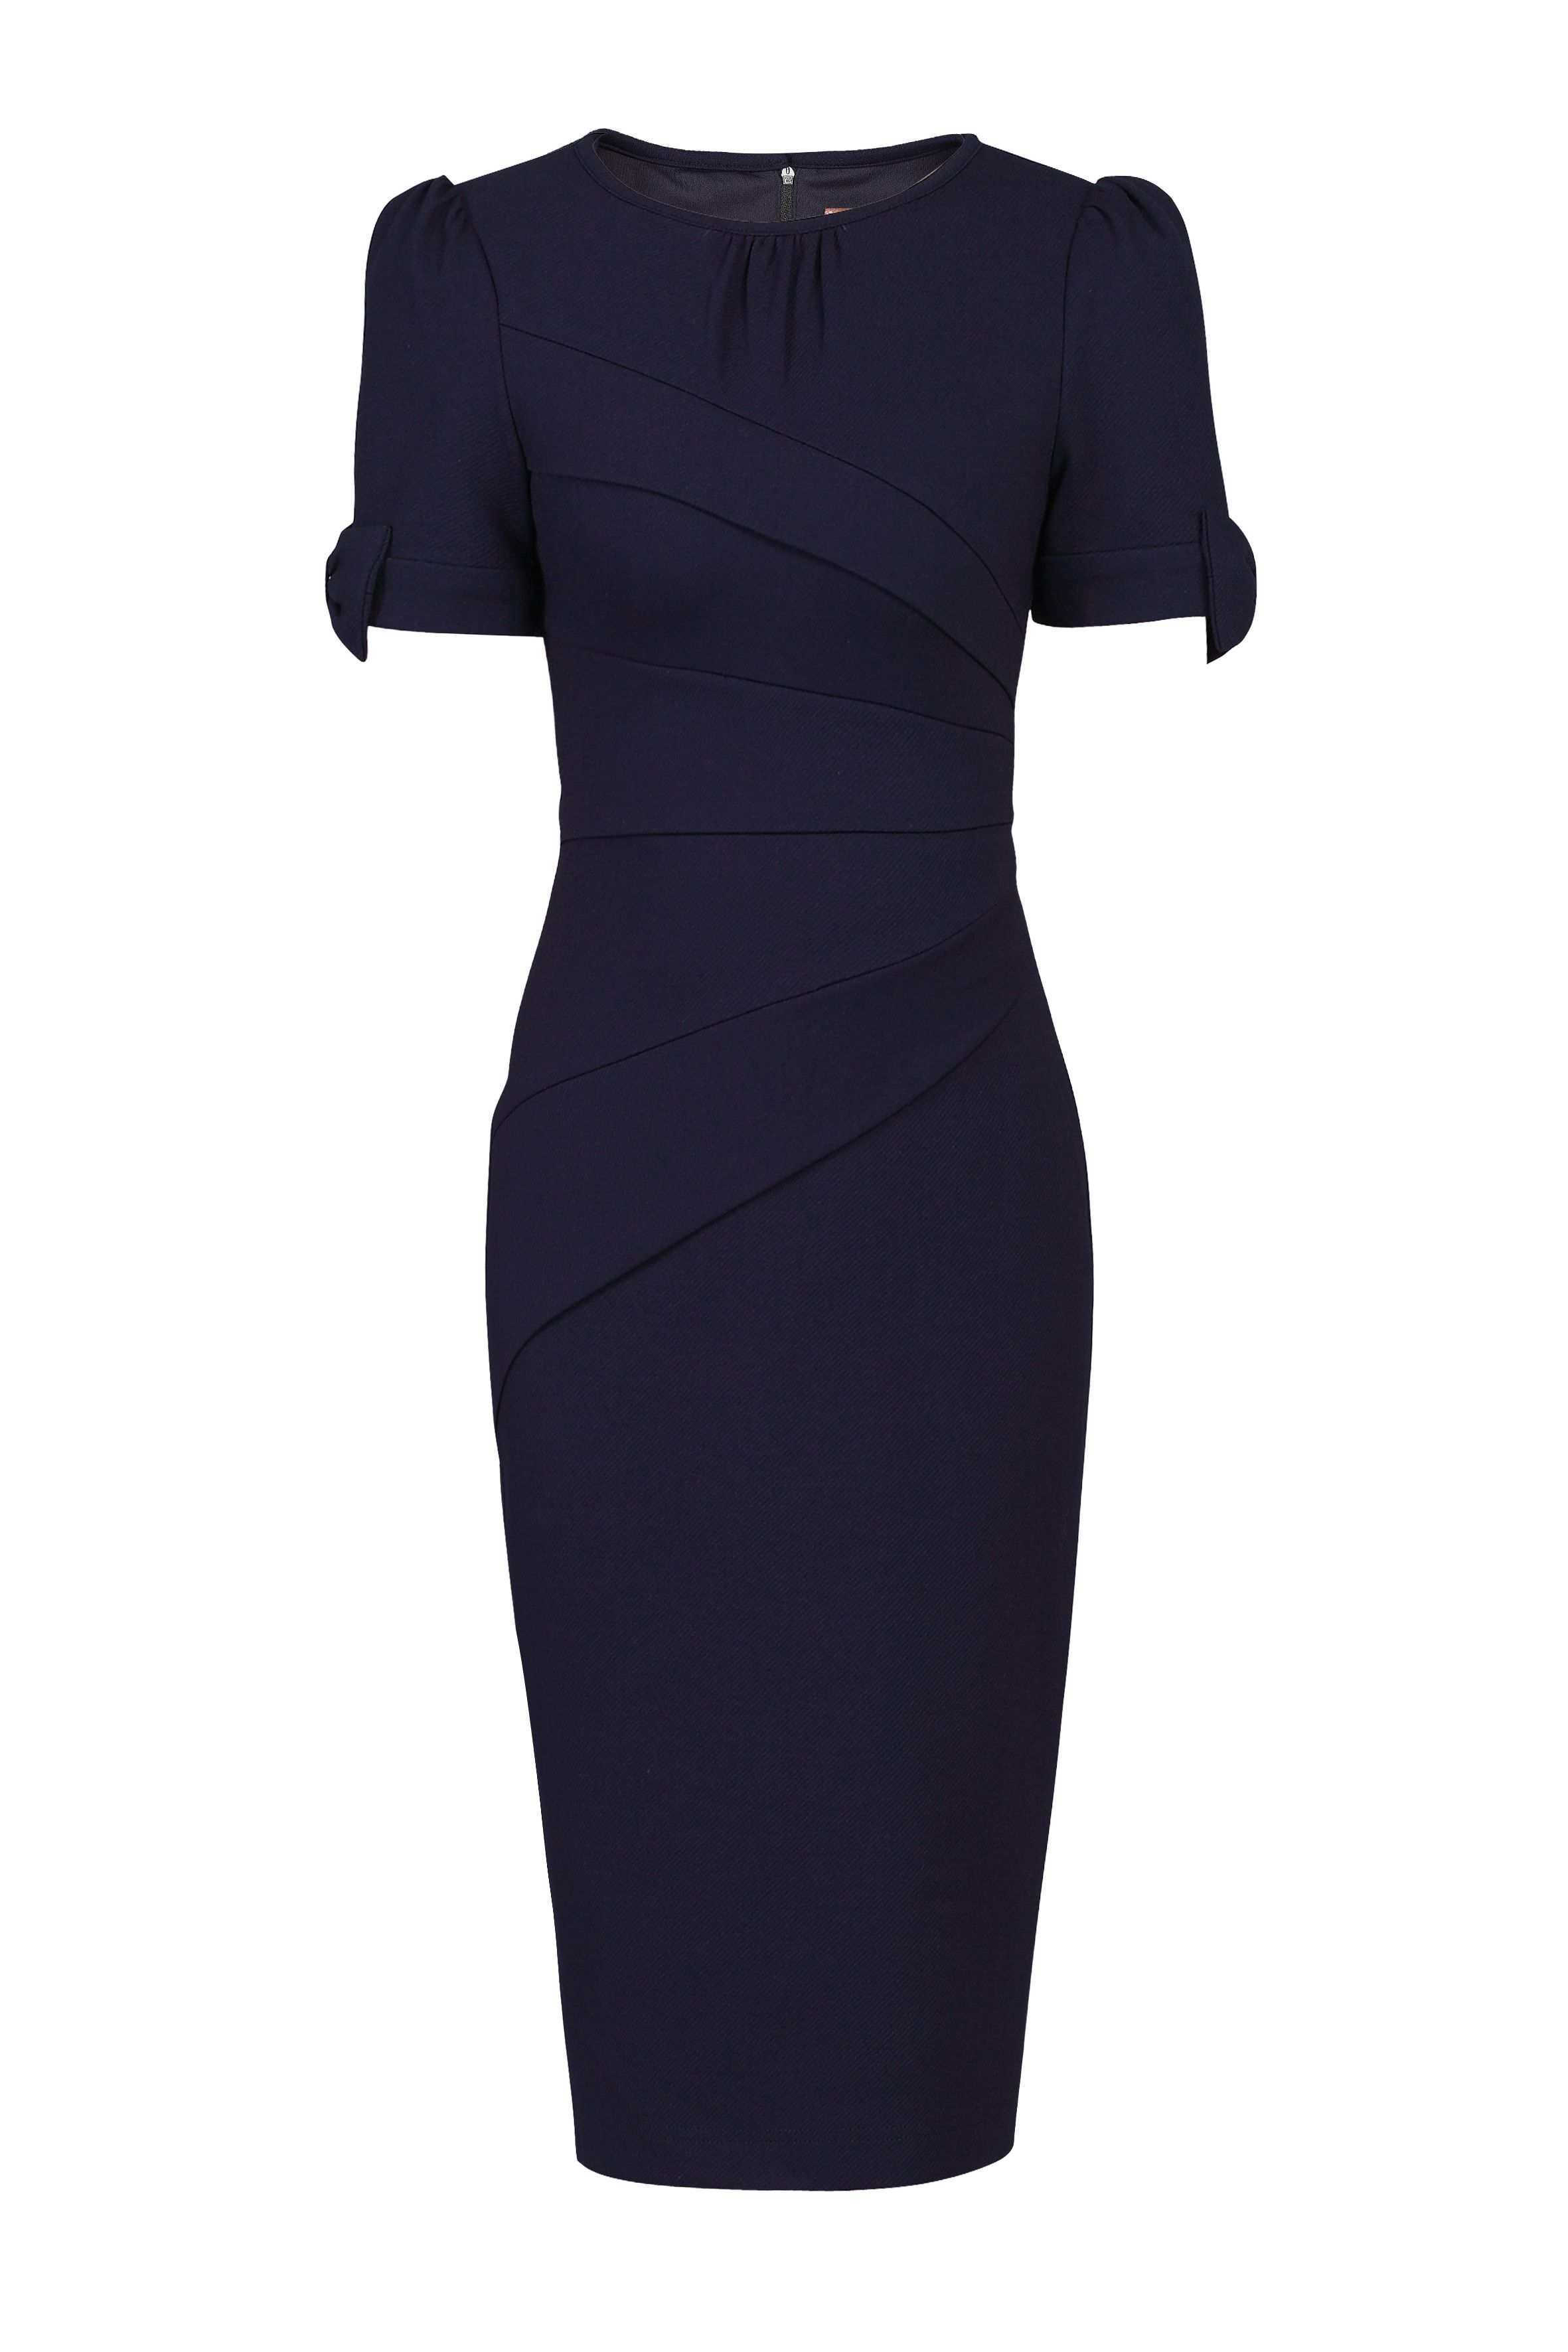 Jolie Moi Bow Detail Bodycon Dress, Blue